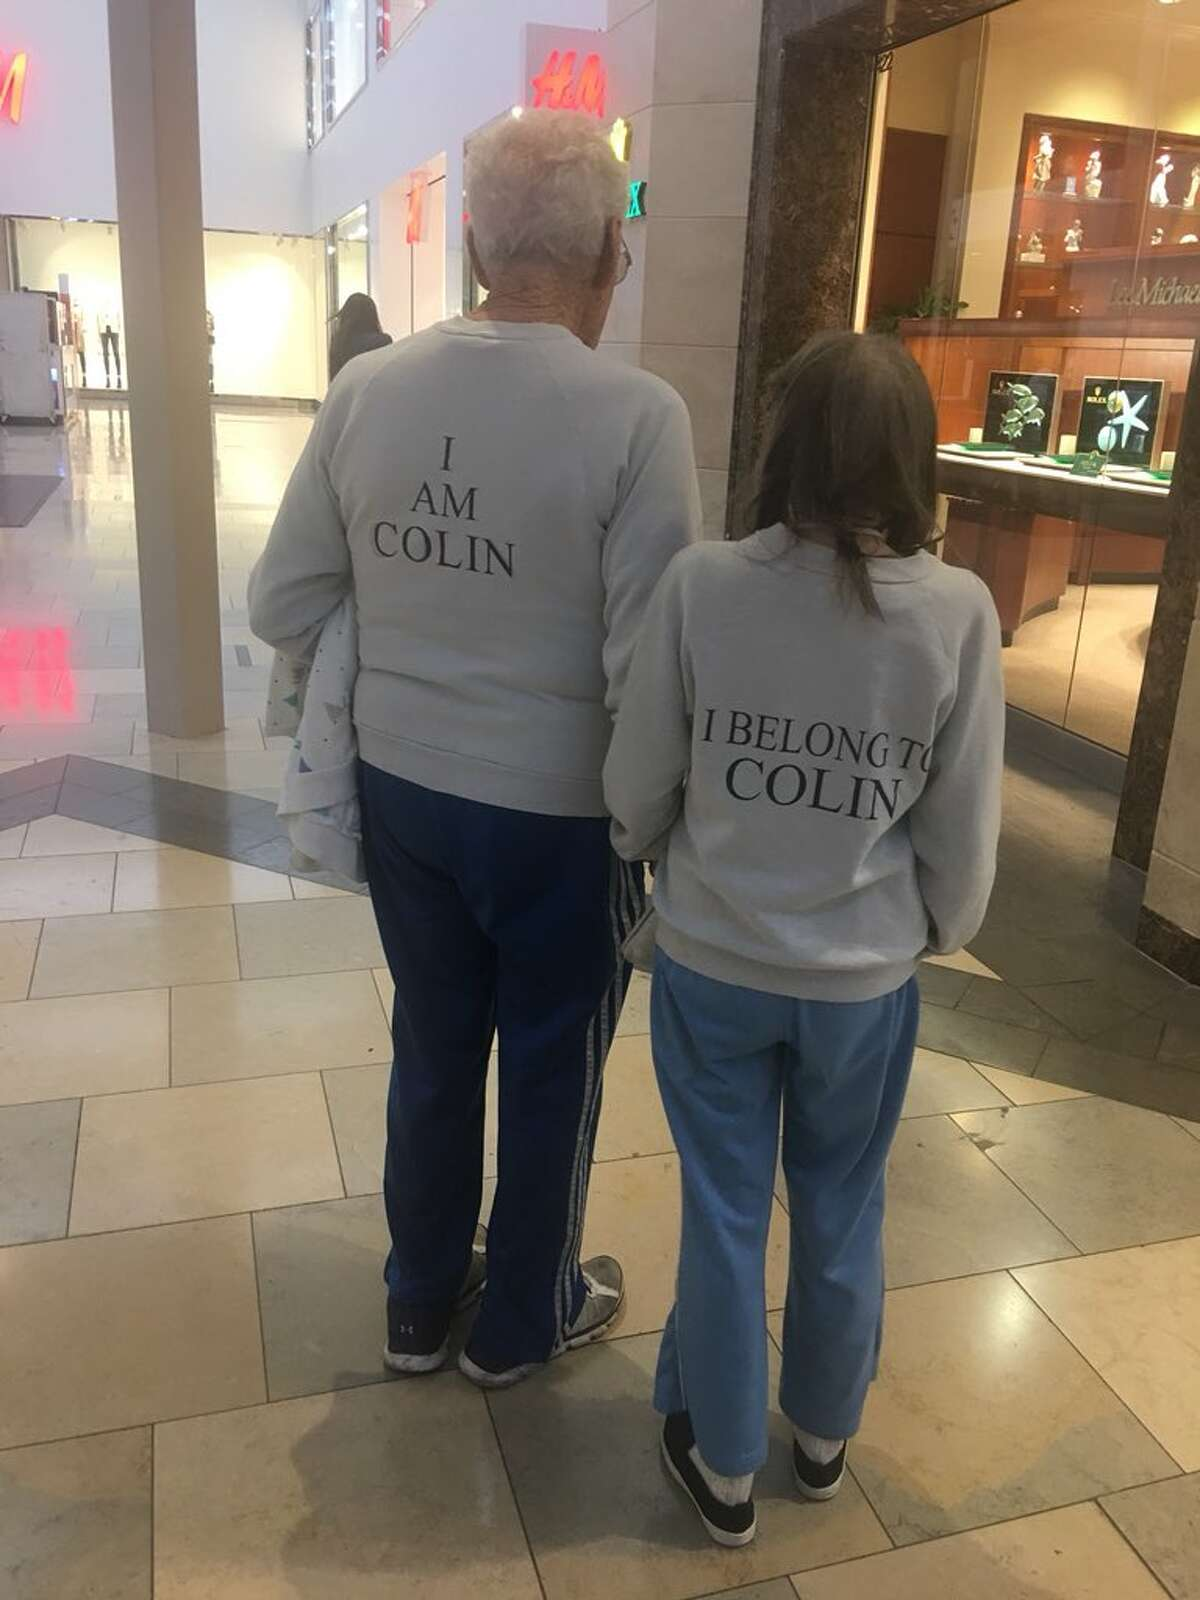 Hand-in-hand and often matching, Kittye and Colin were the power-walking power couple of North Star Mall who marched past storefronts daily, onto social media timelines and into thousands of romantic hearts that are now broken after learning one half of the duo has died.